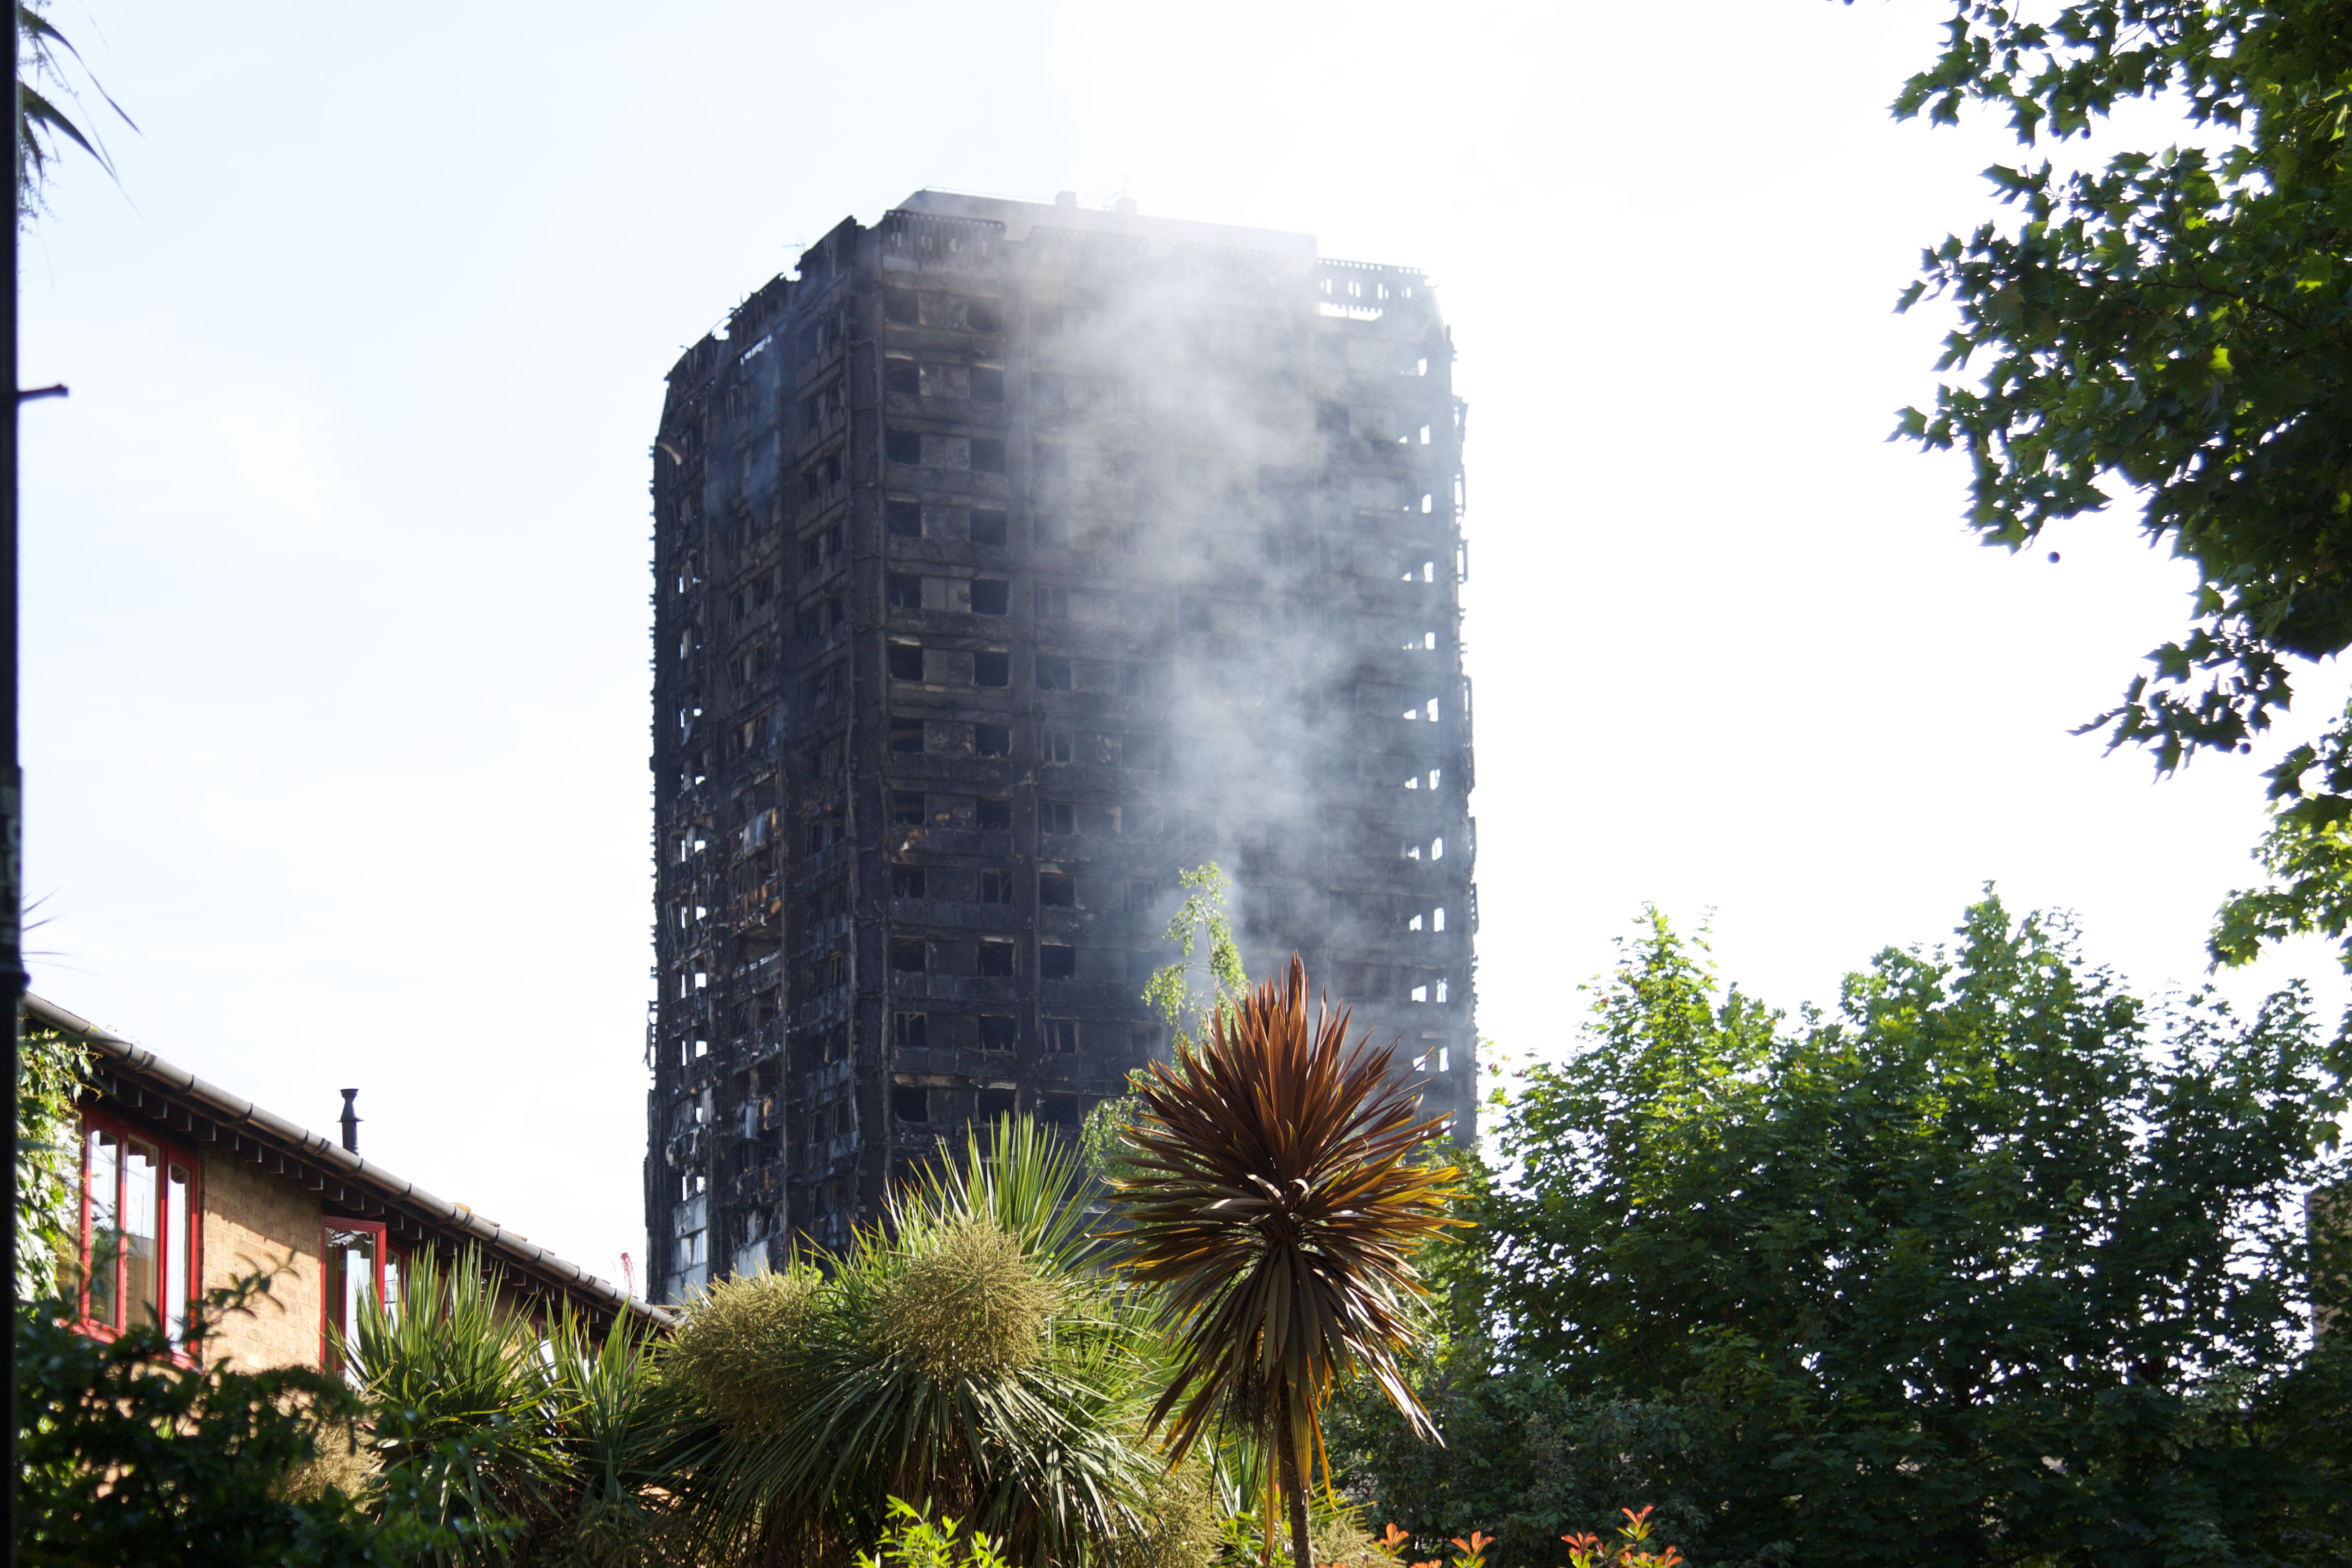 Press Release: KM Security Solutions tasked with Fire Watch for Residential Tower Block